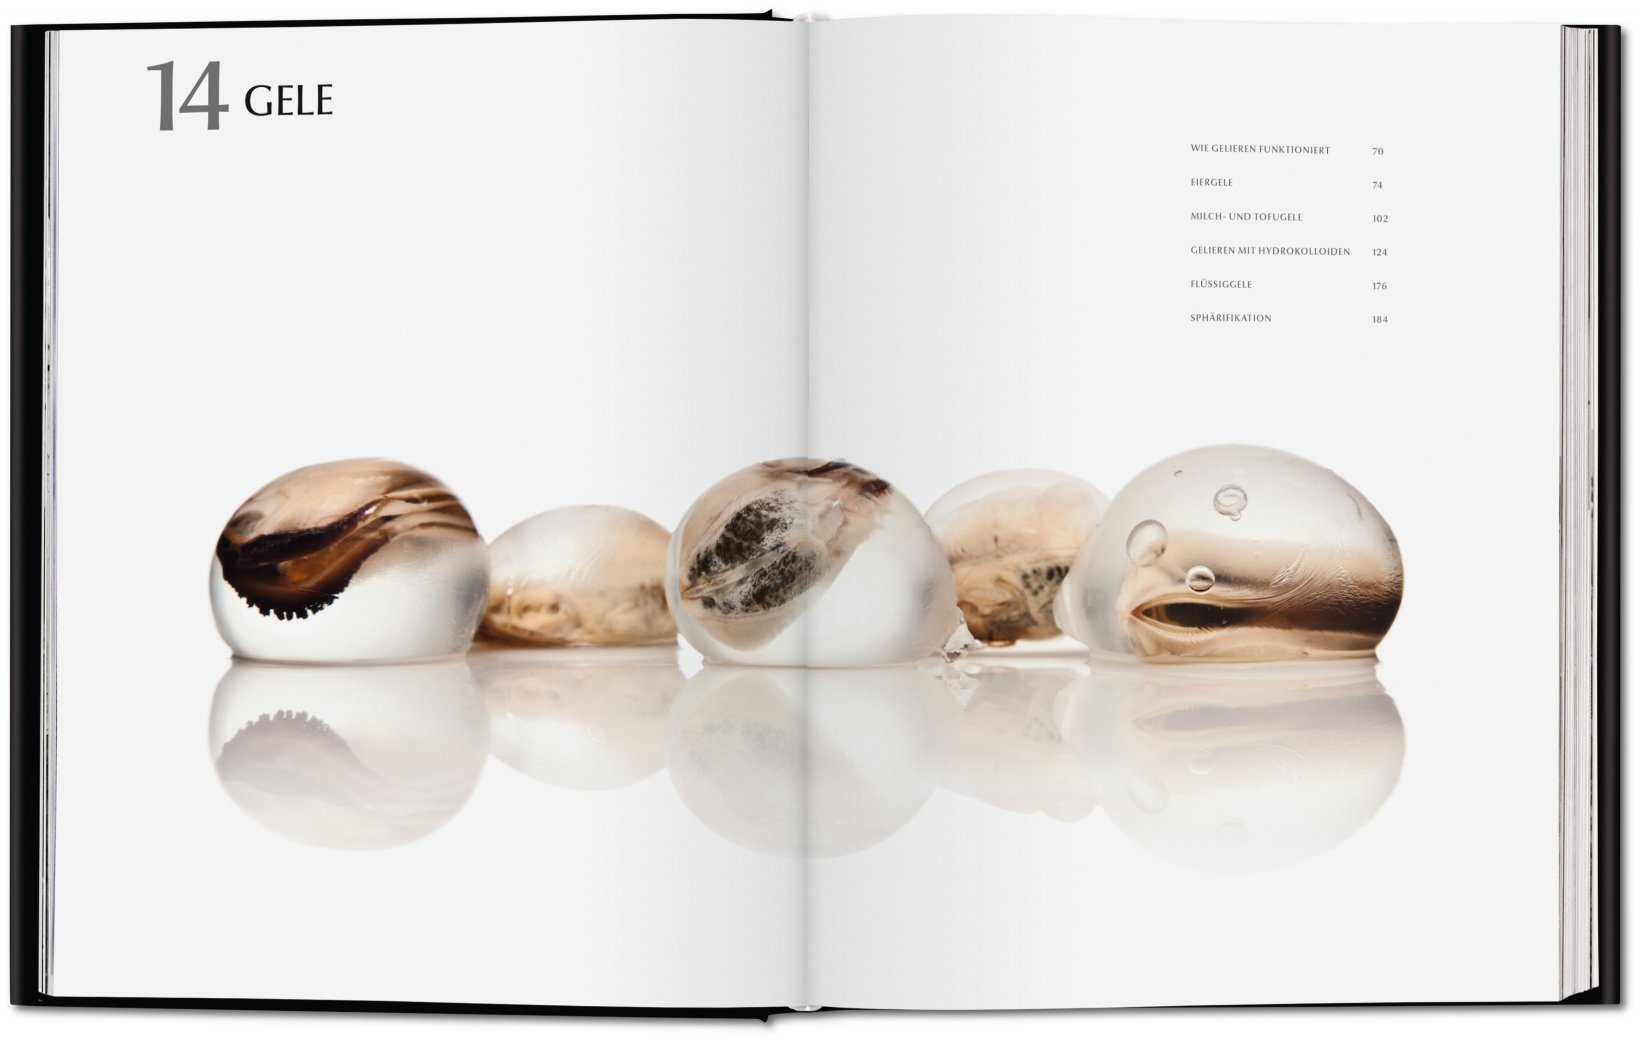 Modernist Cuisine. The Art and Science of Cooking - TASCHEN Books